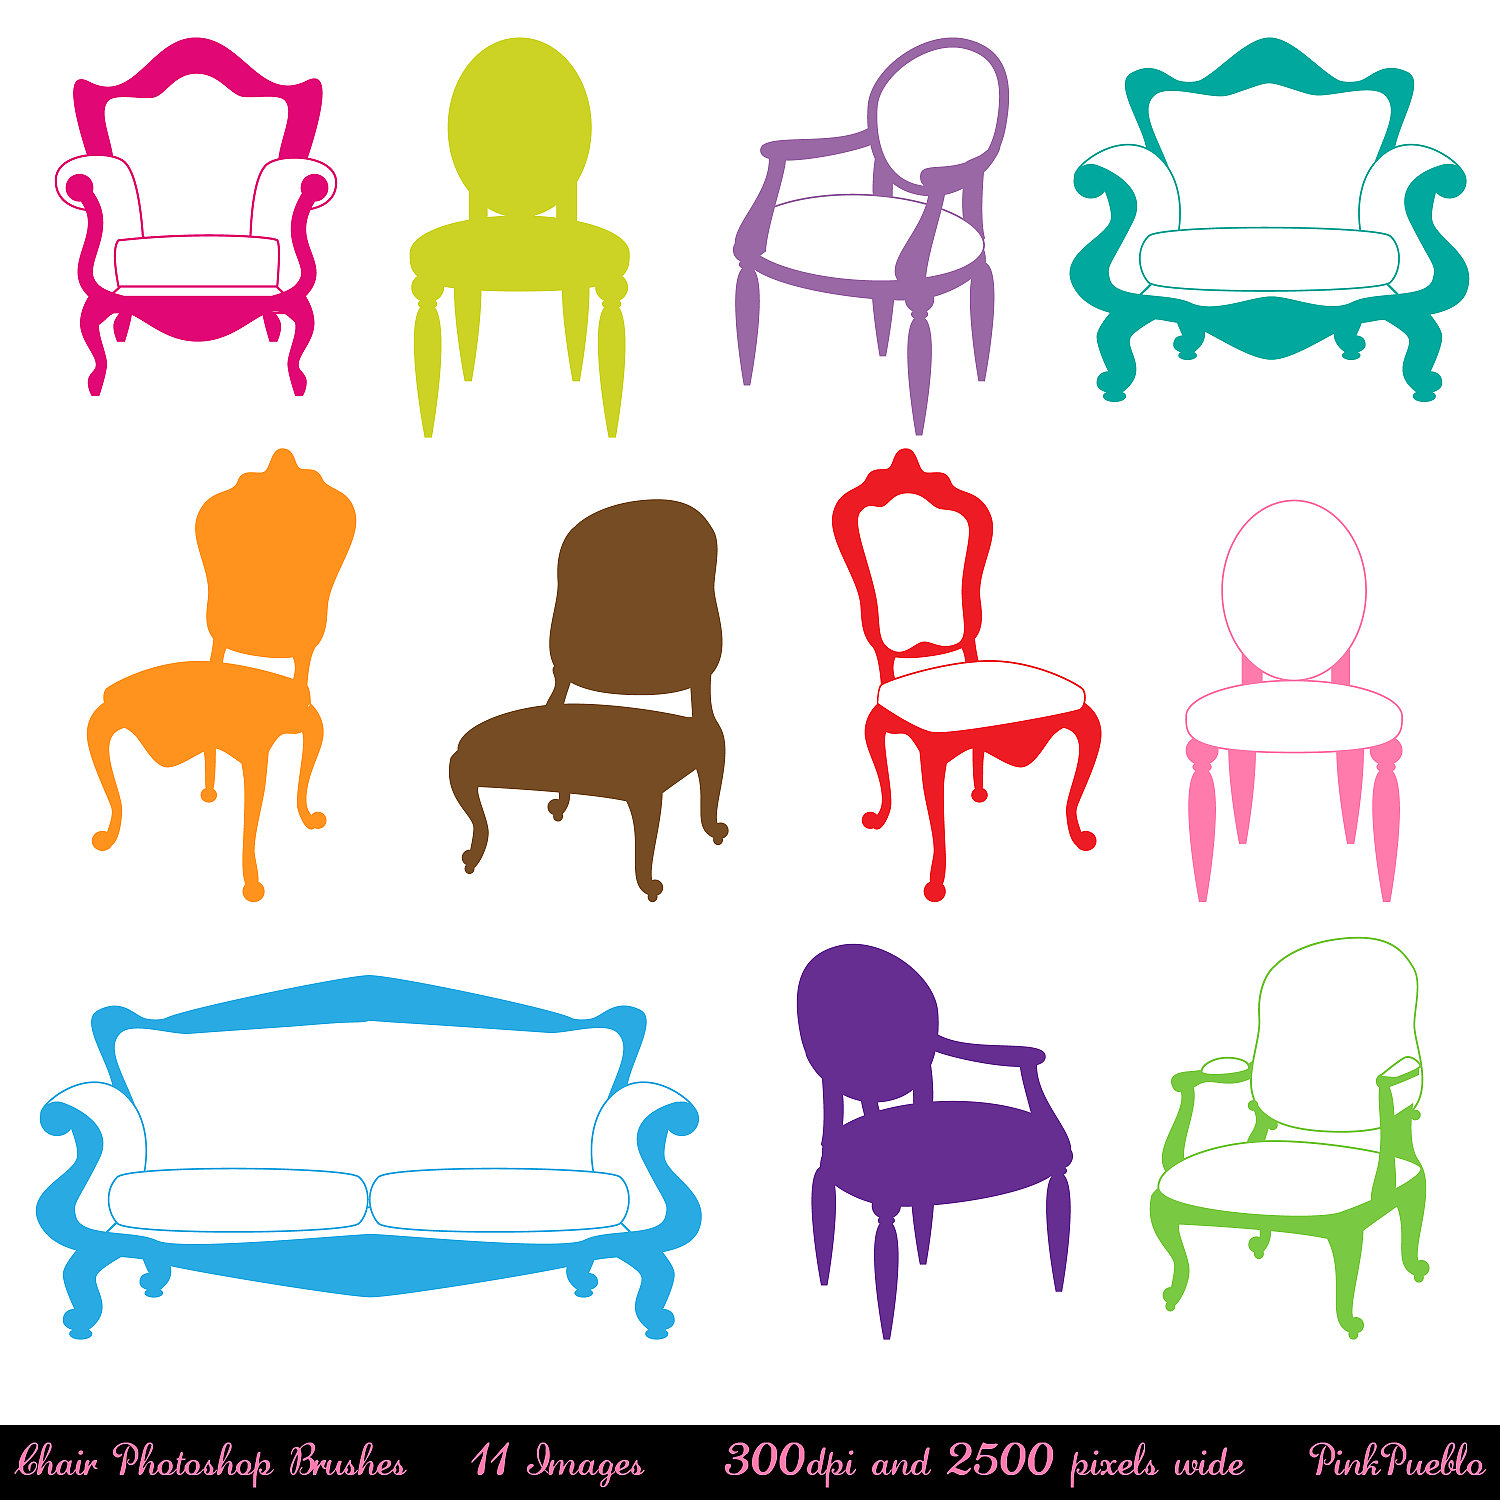 Stay In Your Seat Clip Art free image.